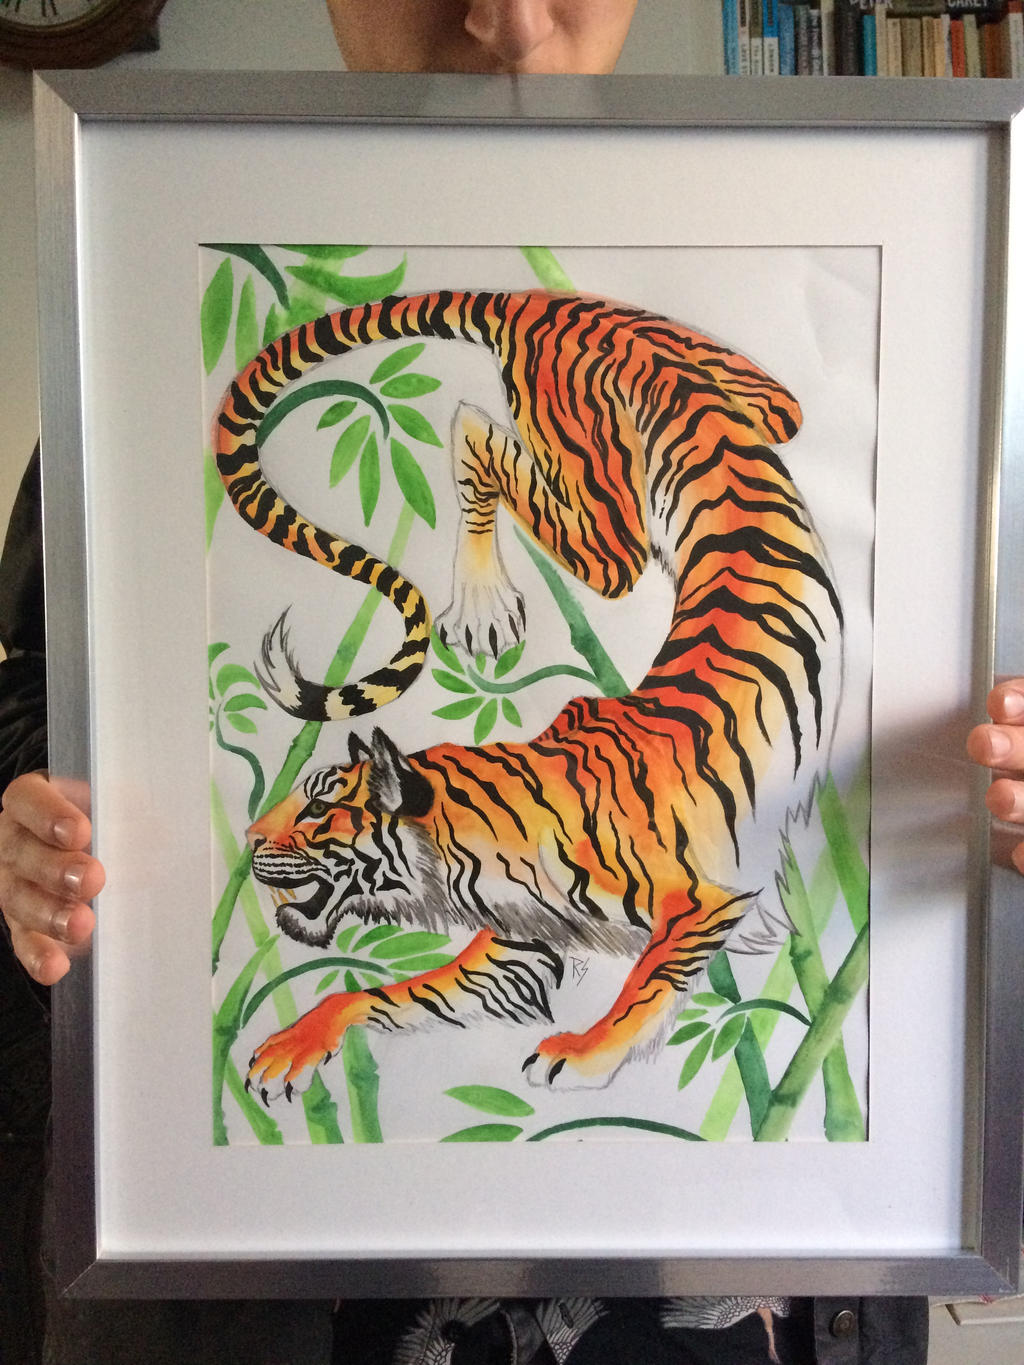 Bamboo Tiger by Nazgul666